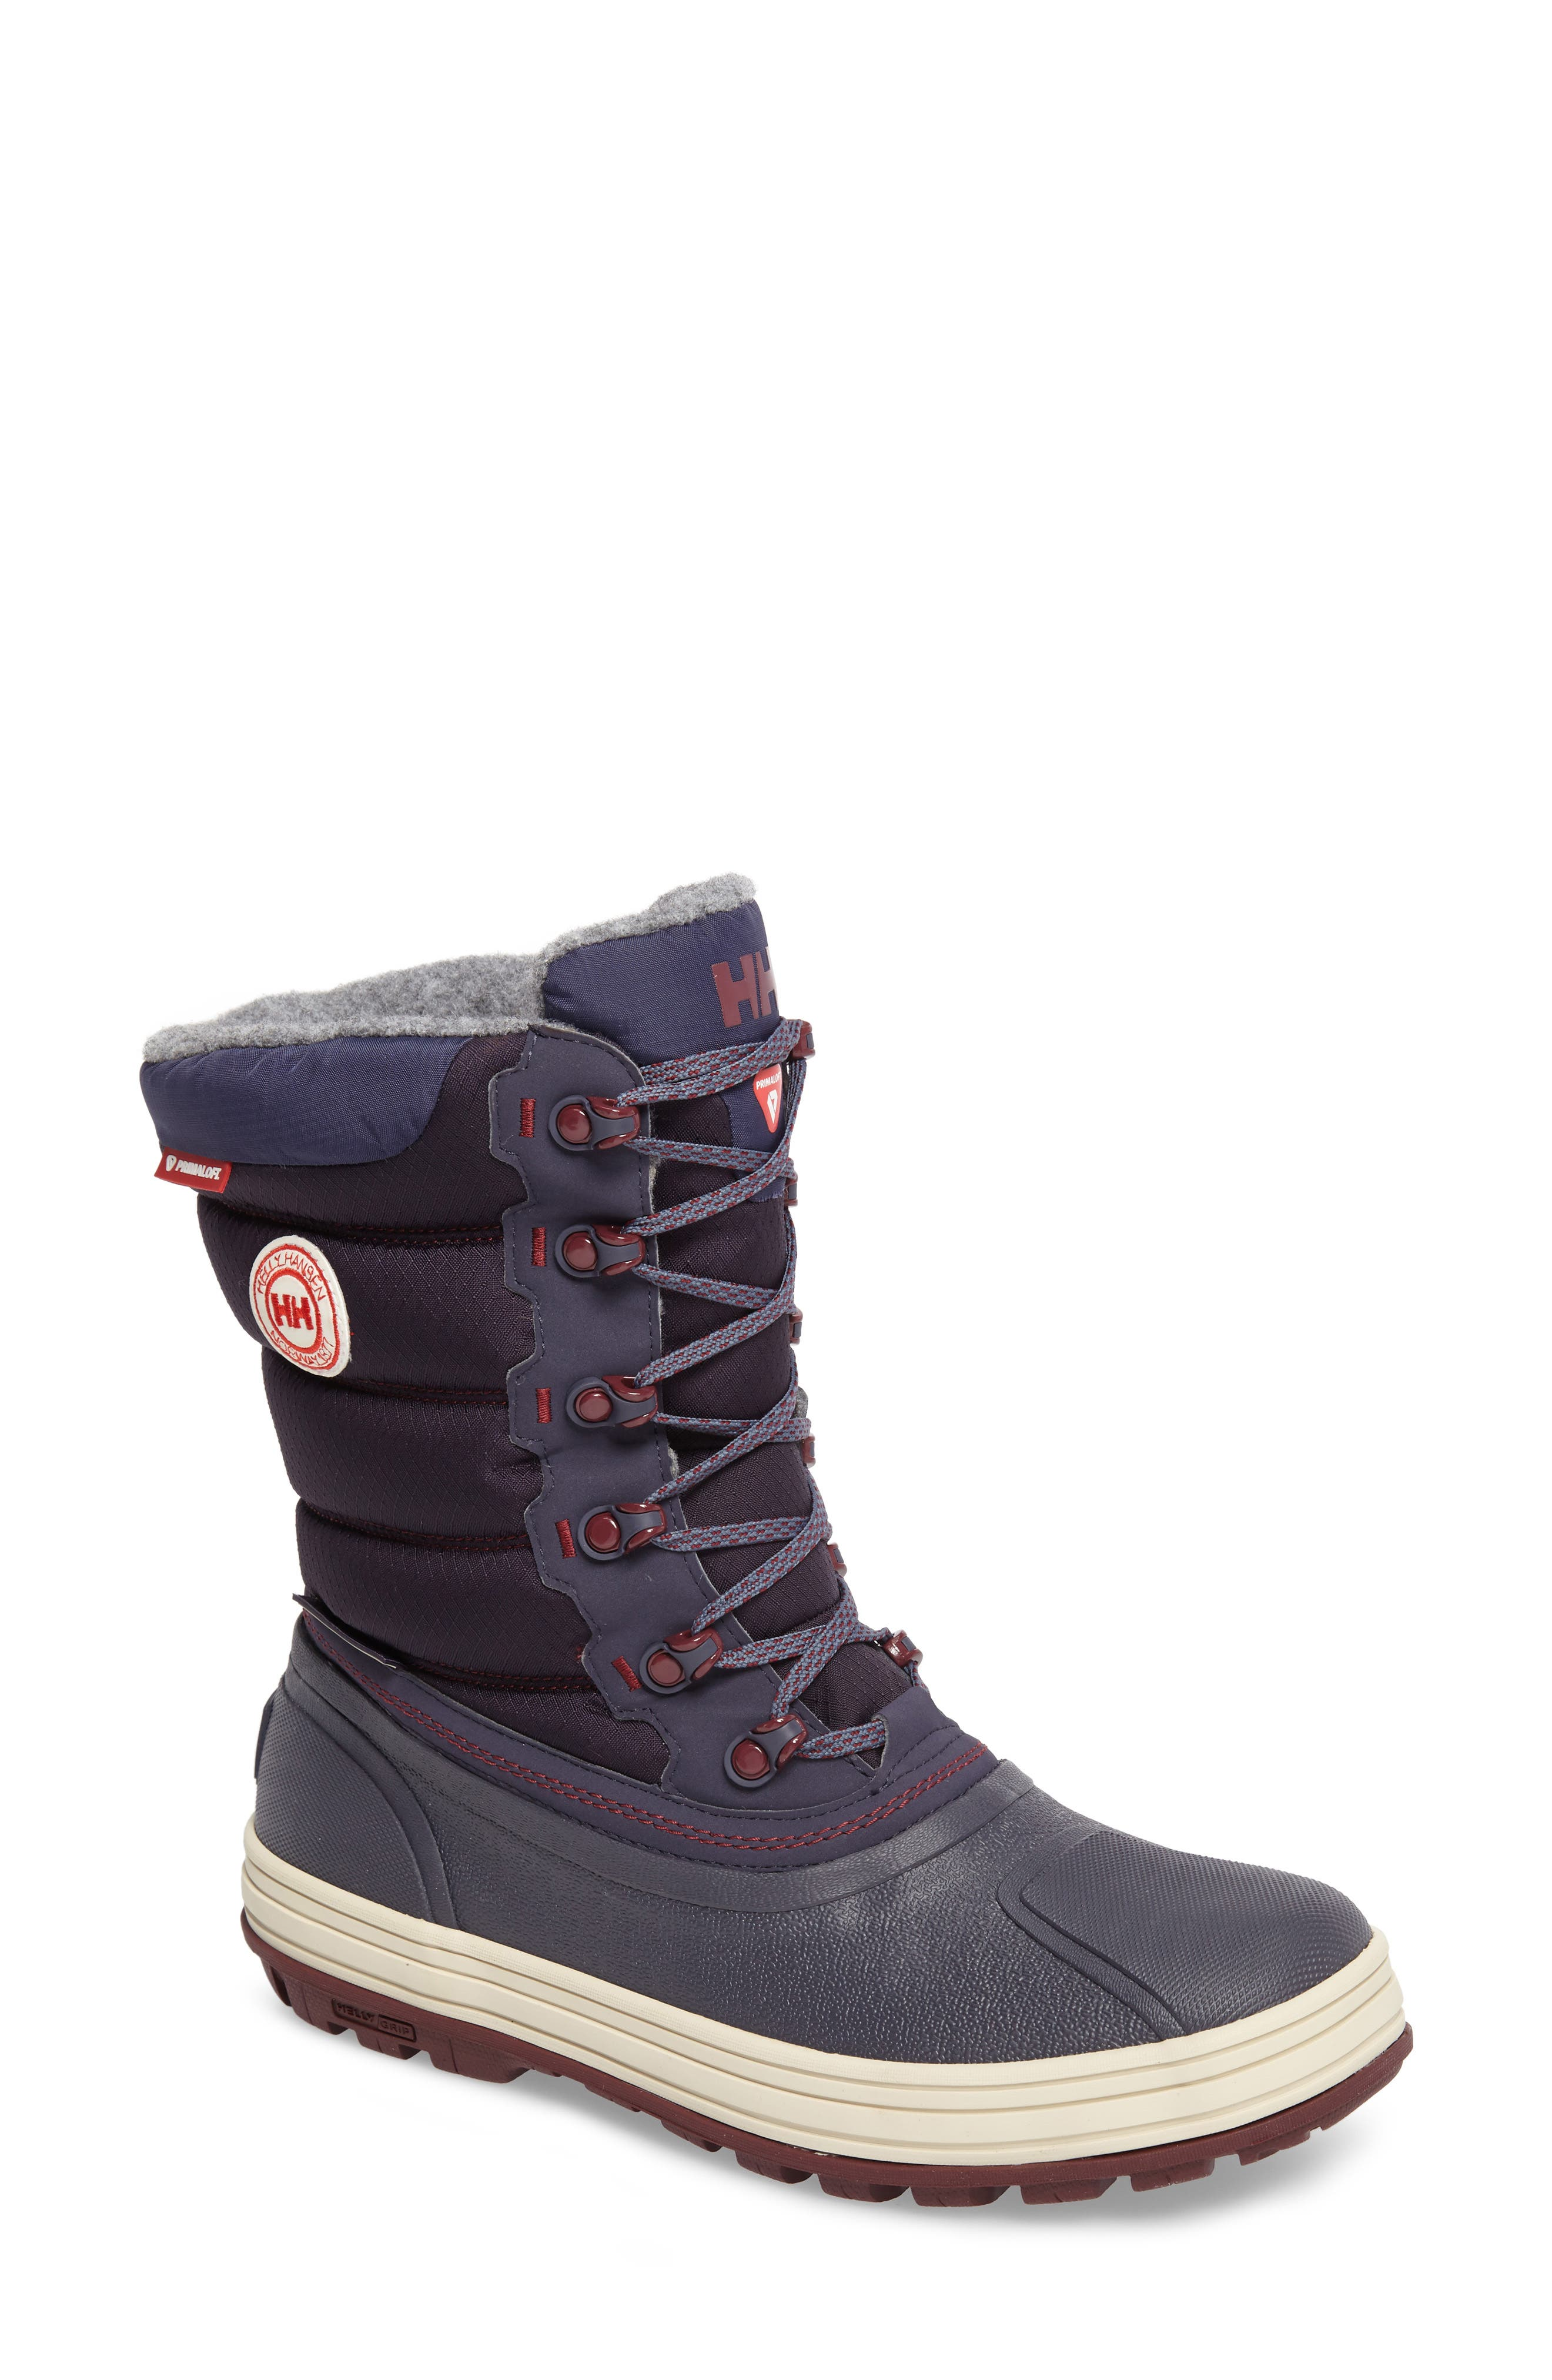 Alternate Image 1 Selected - Helly Hansen Tundra CWB Snow Boot (Women)